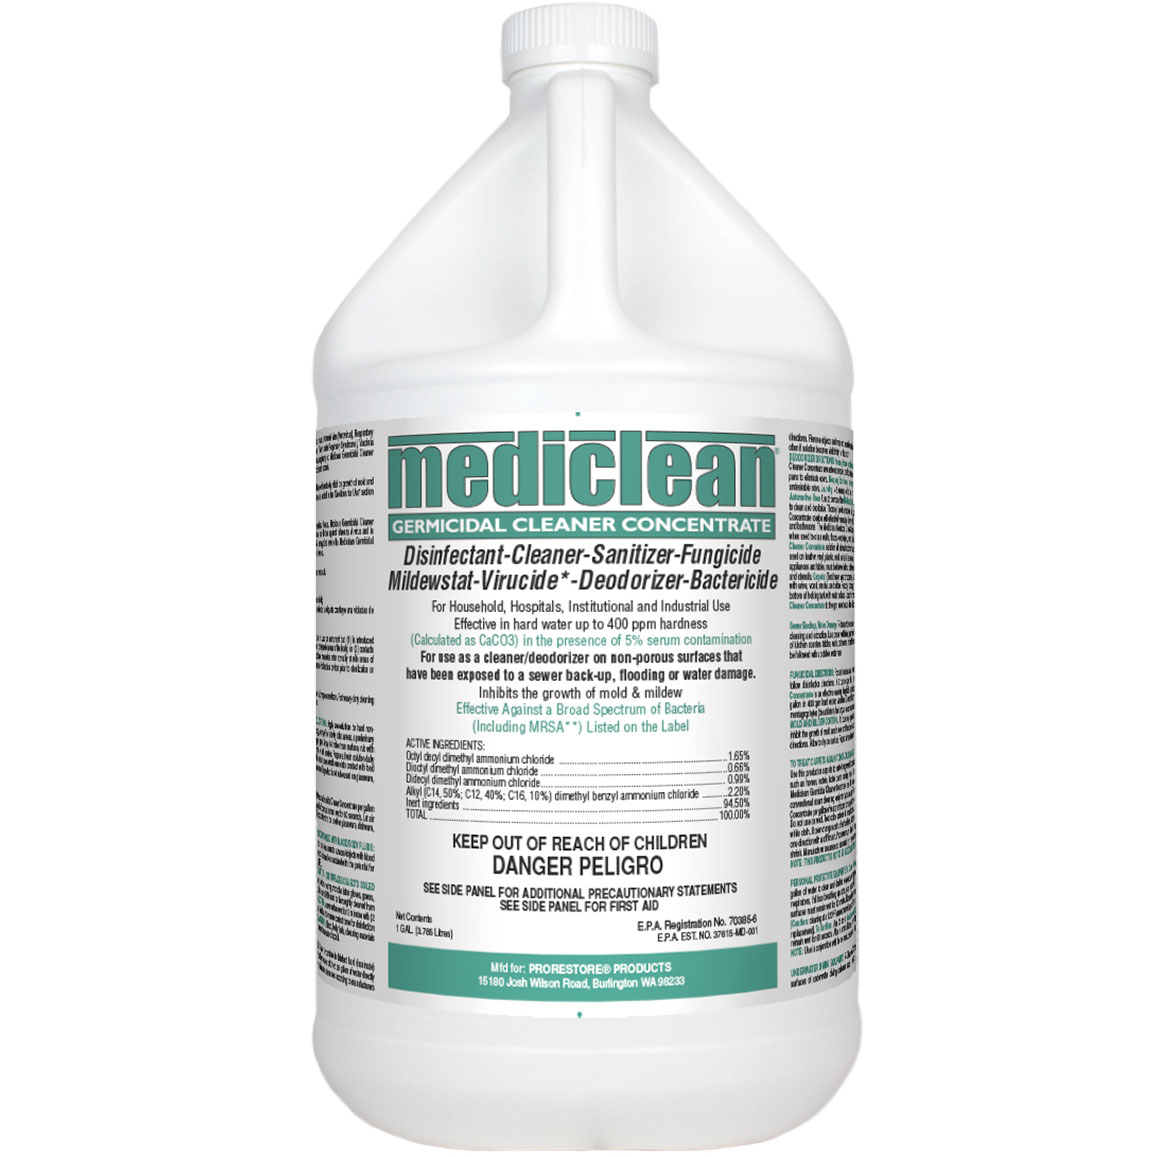 ProRestore Mediclean (Formally Microban QGC) Germicidal Cleaner Concentrate MINT 1 Gallon Chemspec 221592905-1  A19968  In Stock